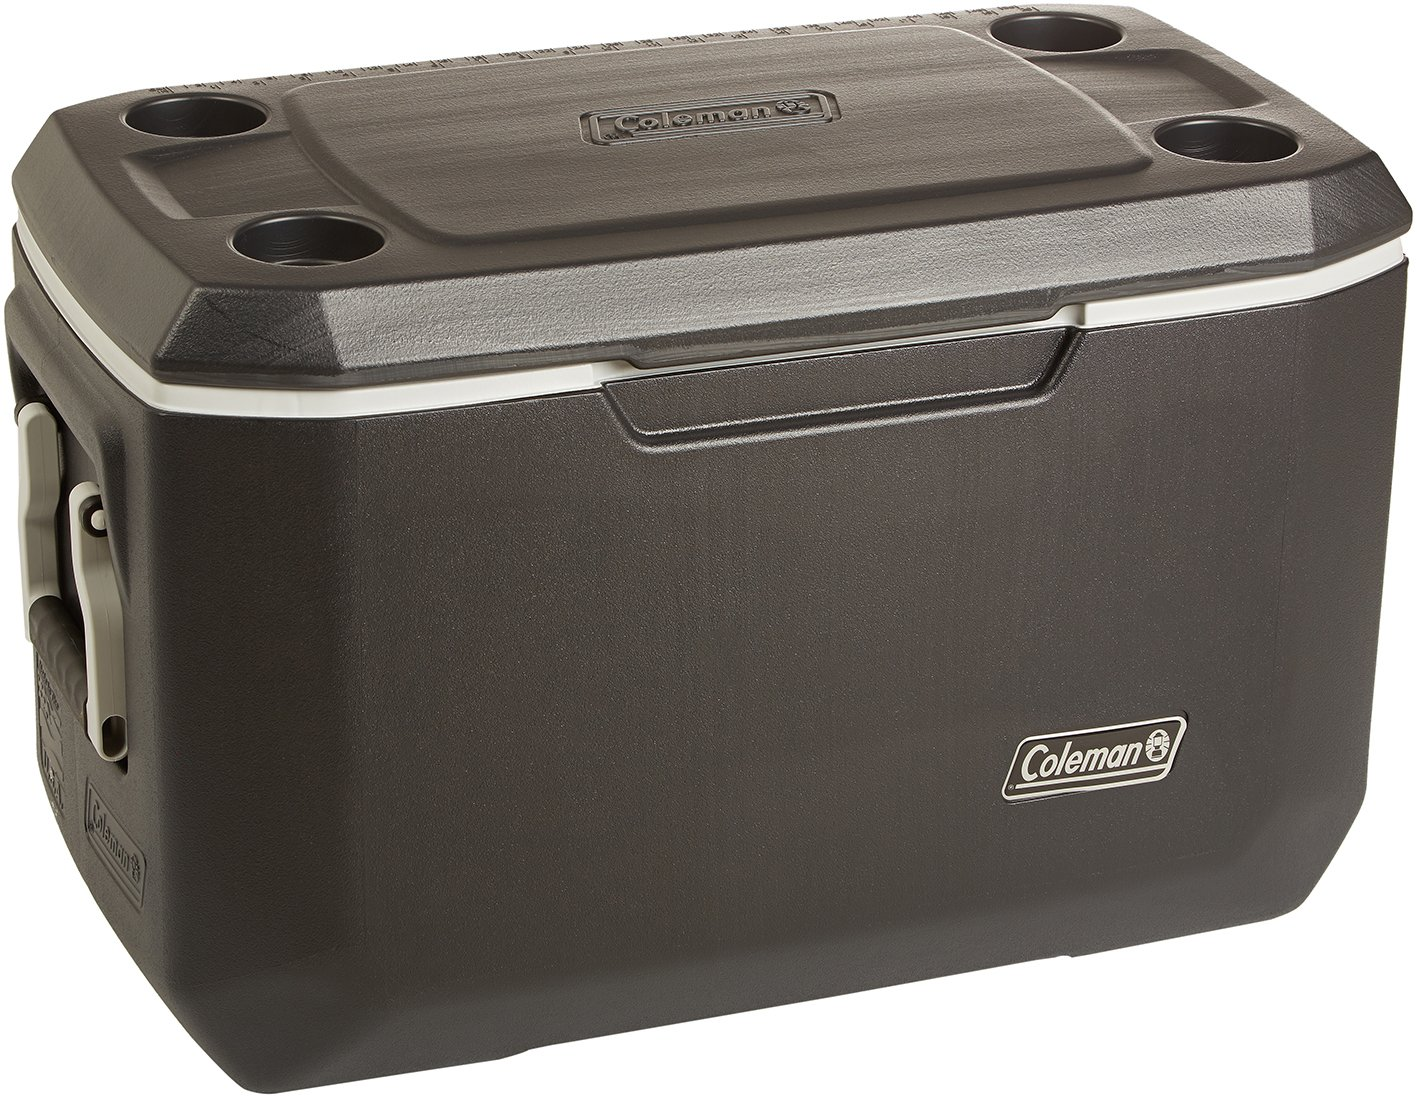 Best Coleman Xtreme Series Portable Cooler